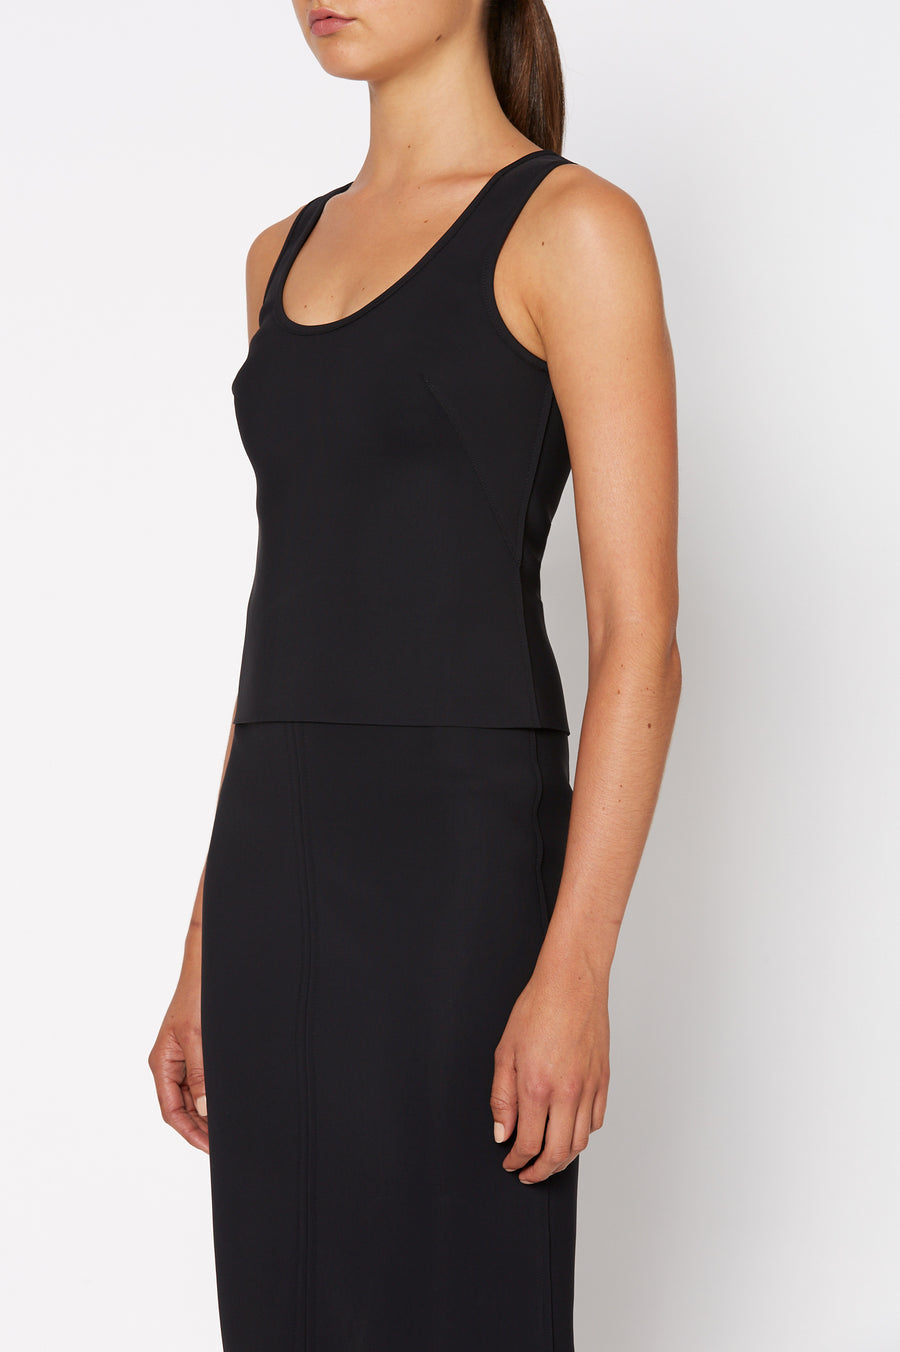 Scuba Tank, scoop neckline, shoulder straps and is intended to fit close to the body, Color Black